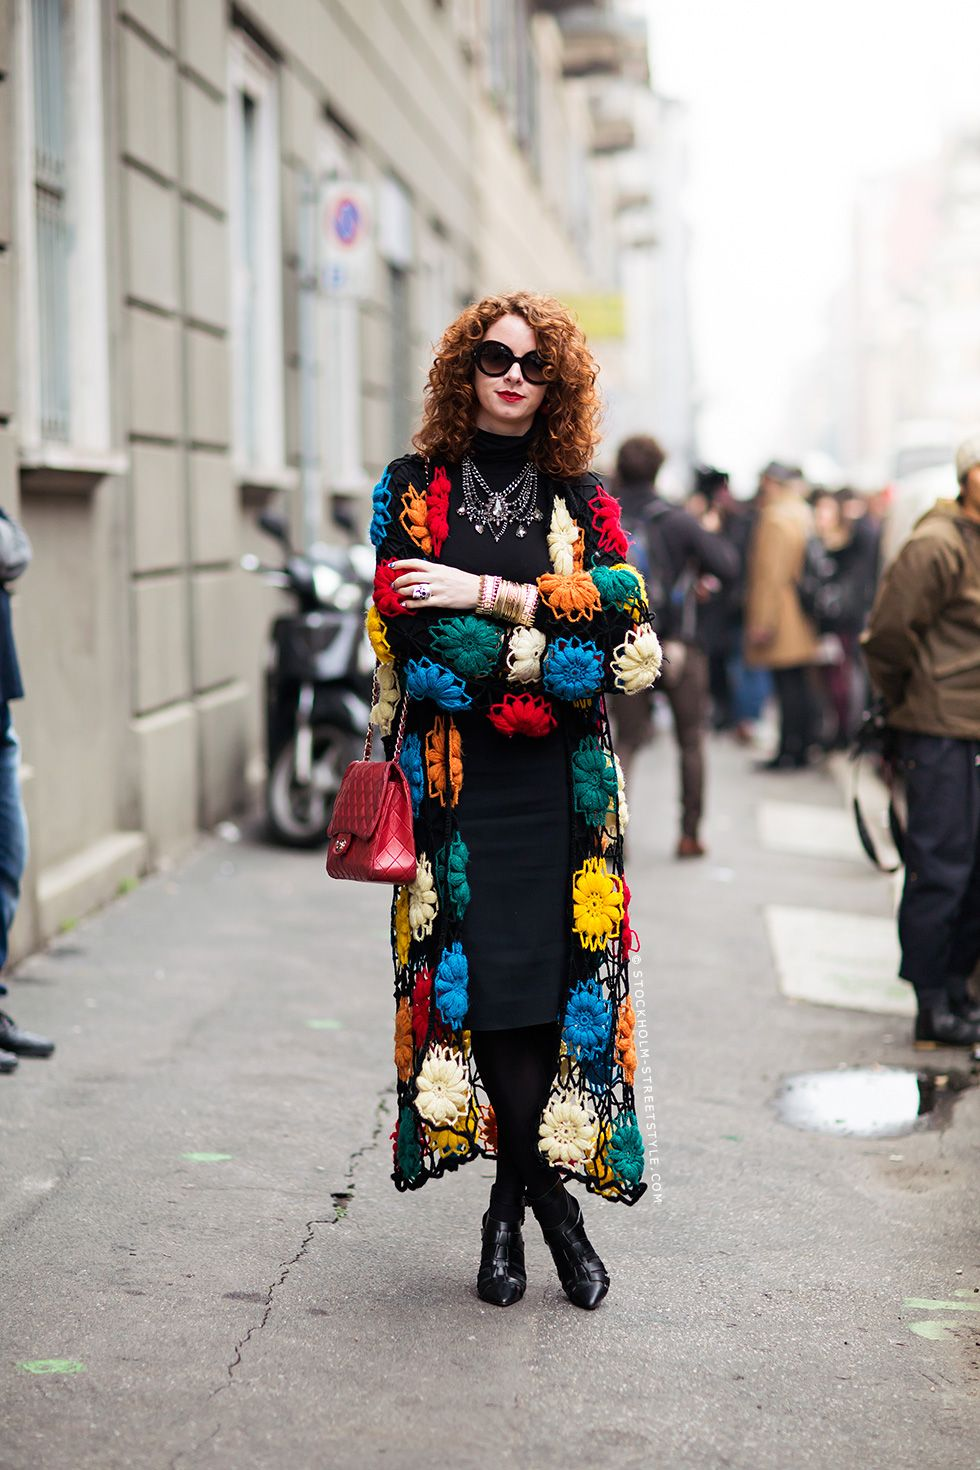 oh it's #CarmelWalsh in that crochet creation. Milan.